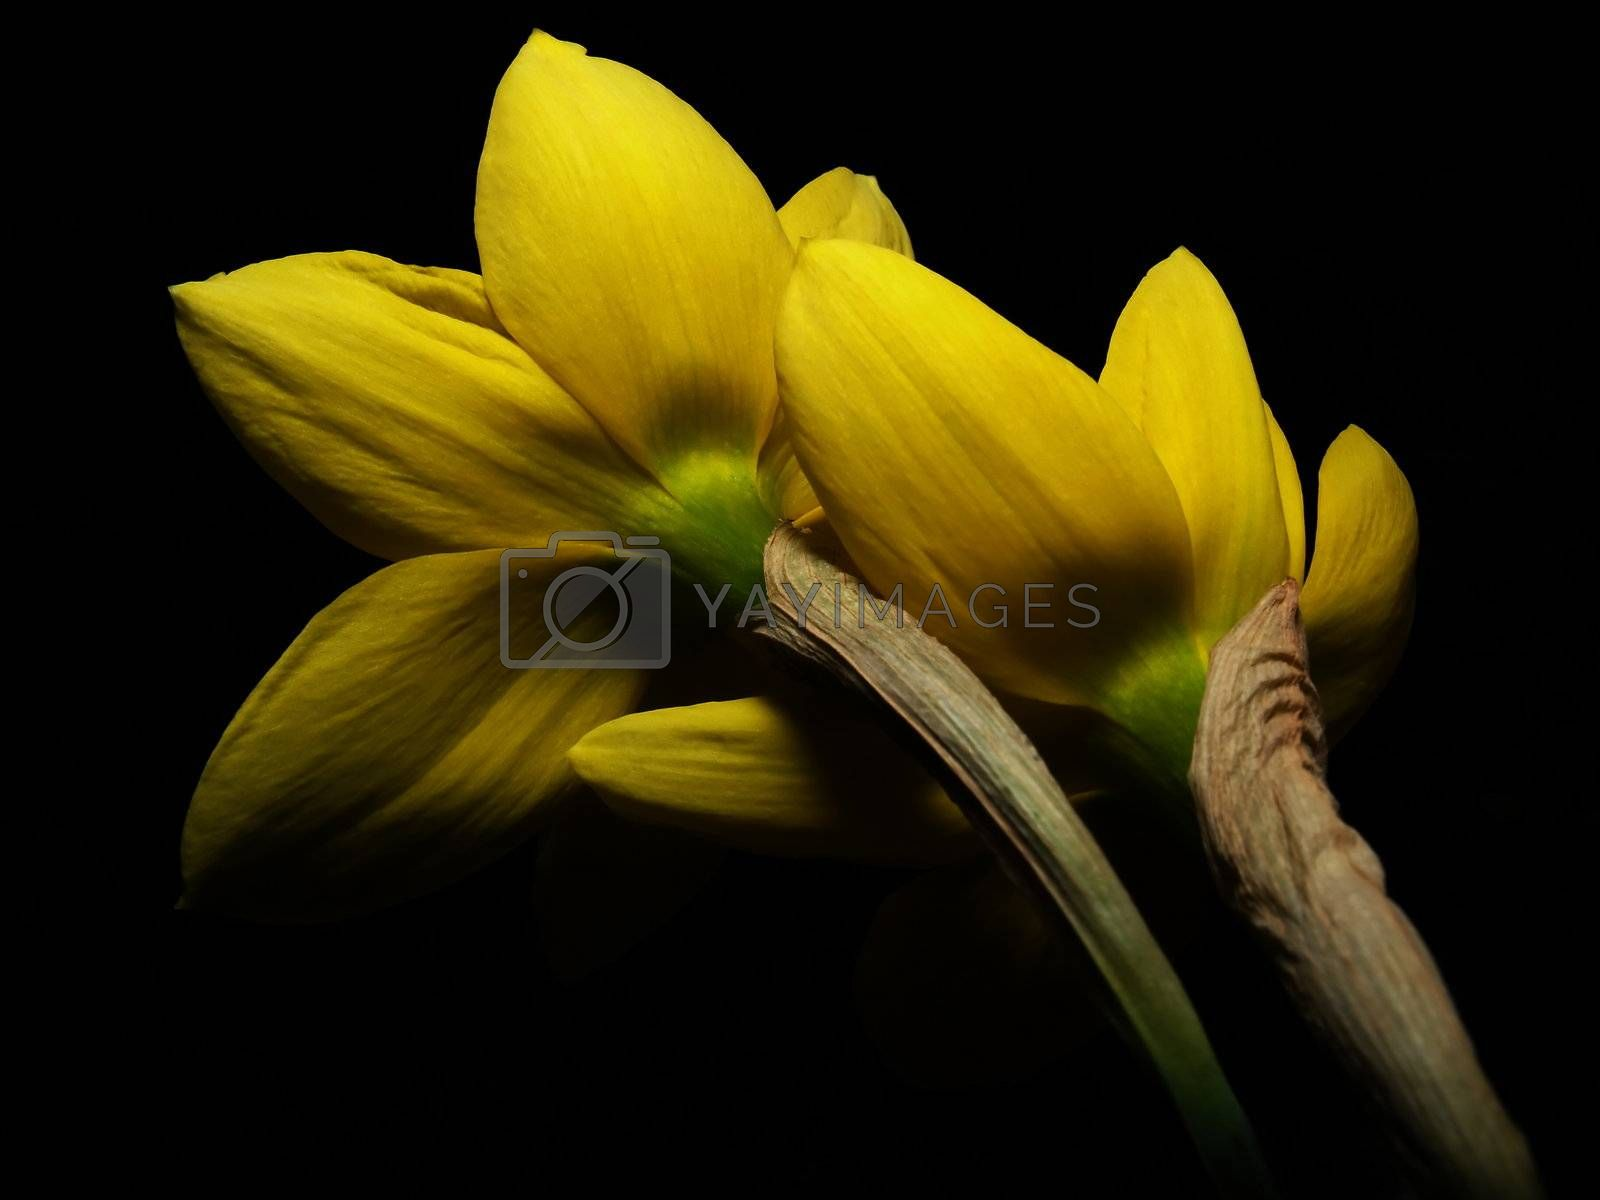 Two narcissus hugging each other.